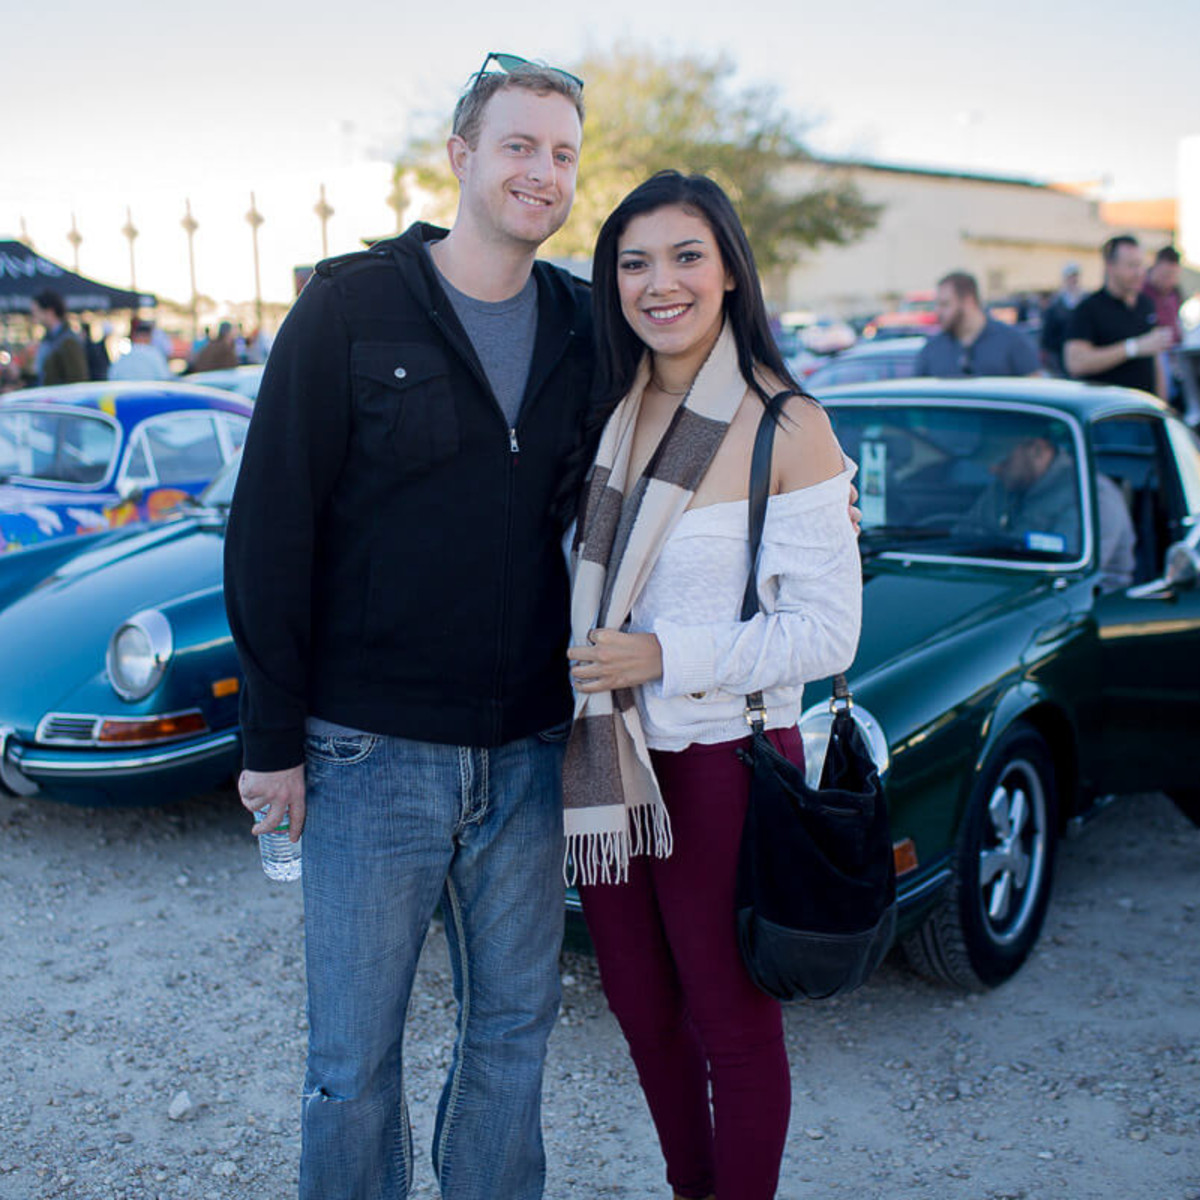 Houston, TejasTreffen Porsche event, Nov 2016, Brandon Schmitt, Genessis Martinez